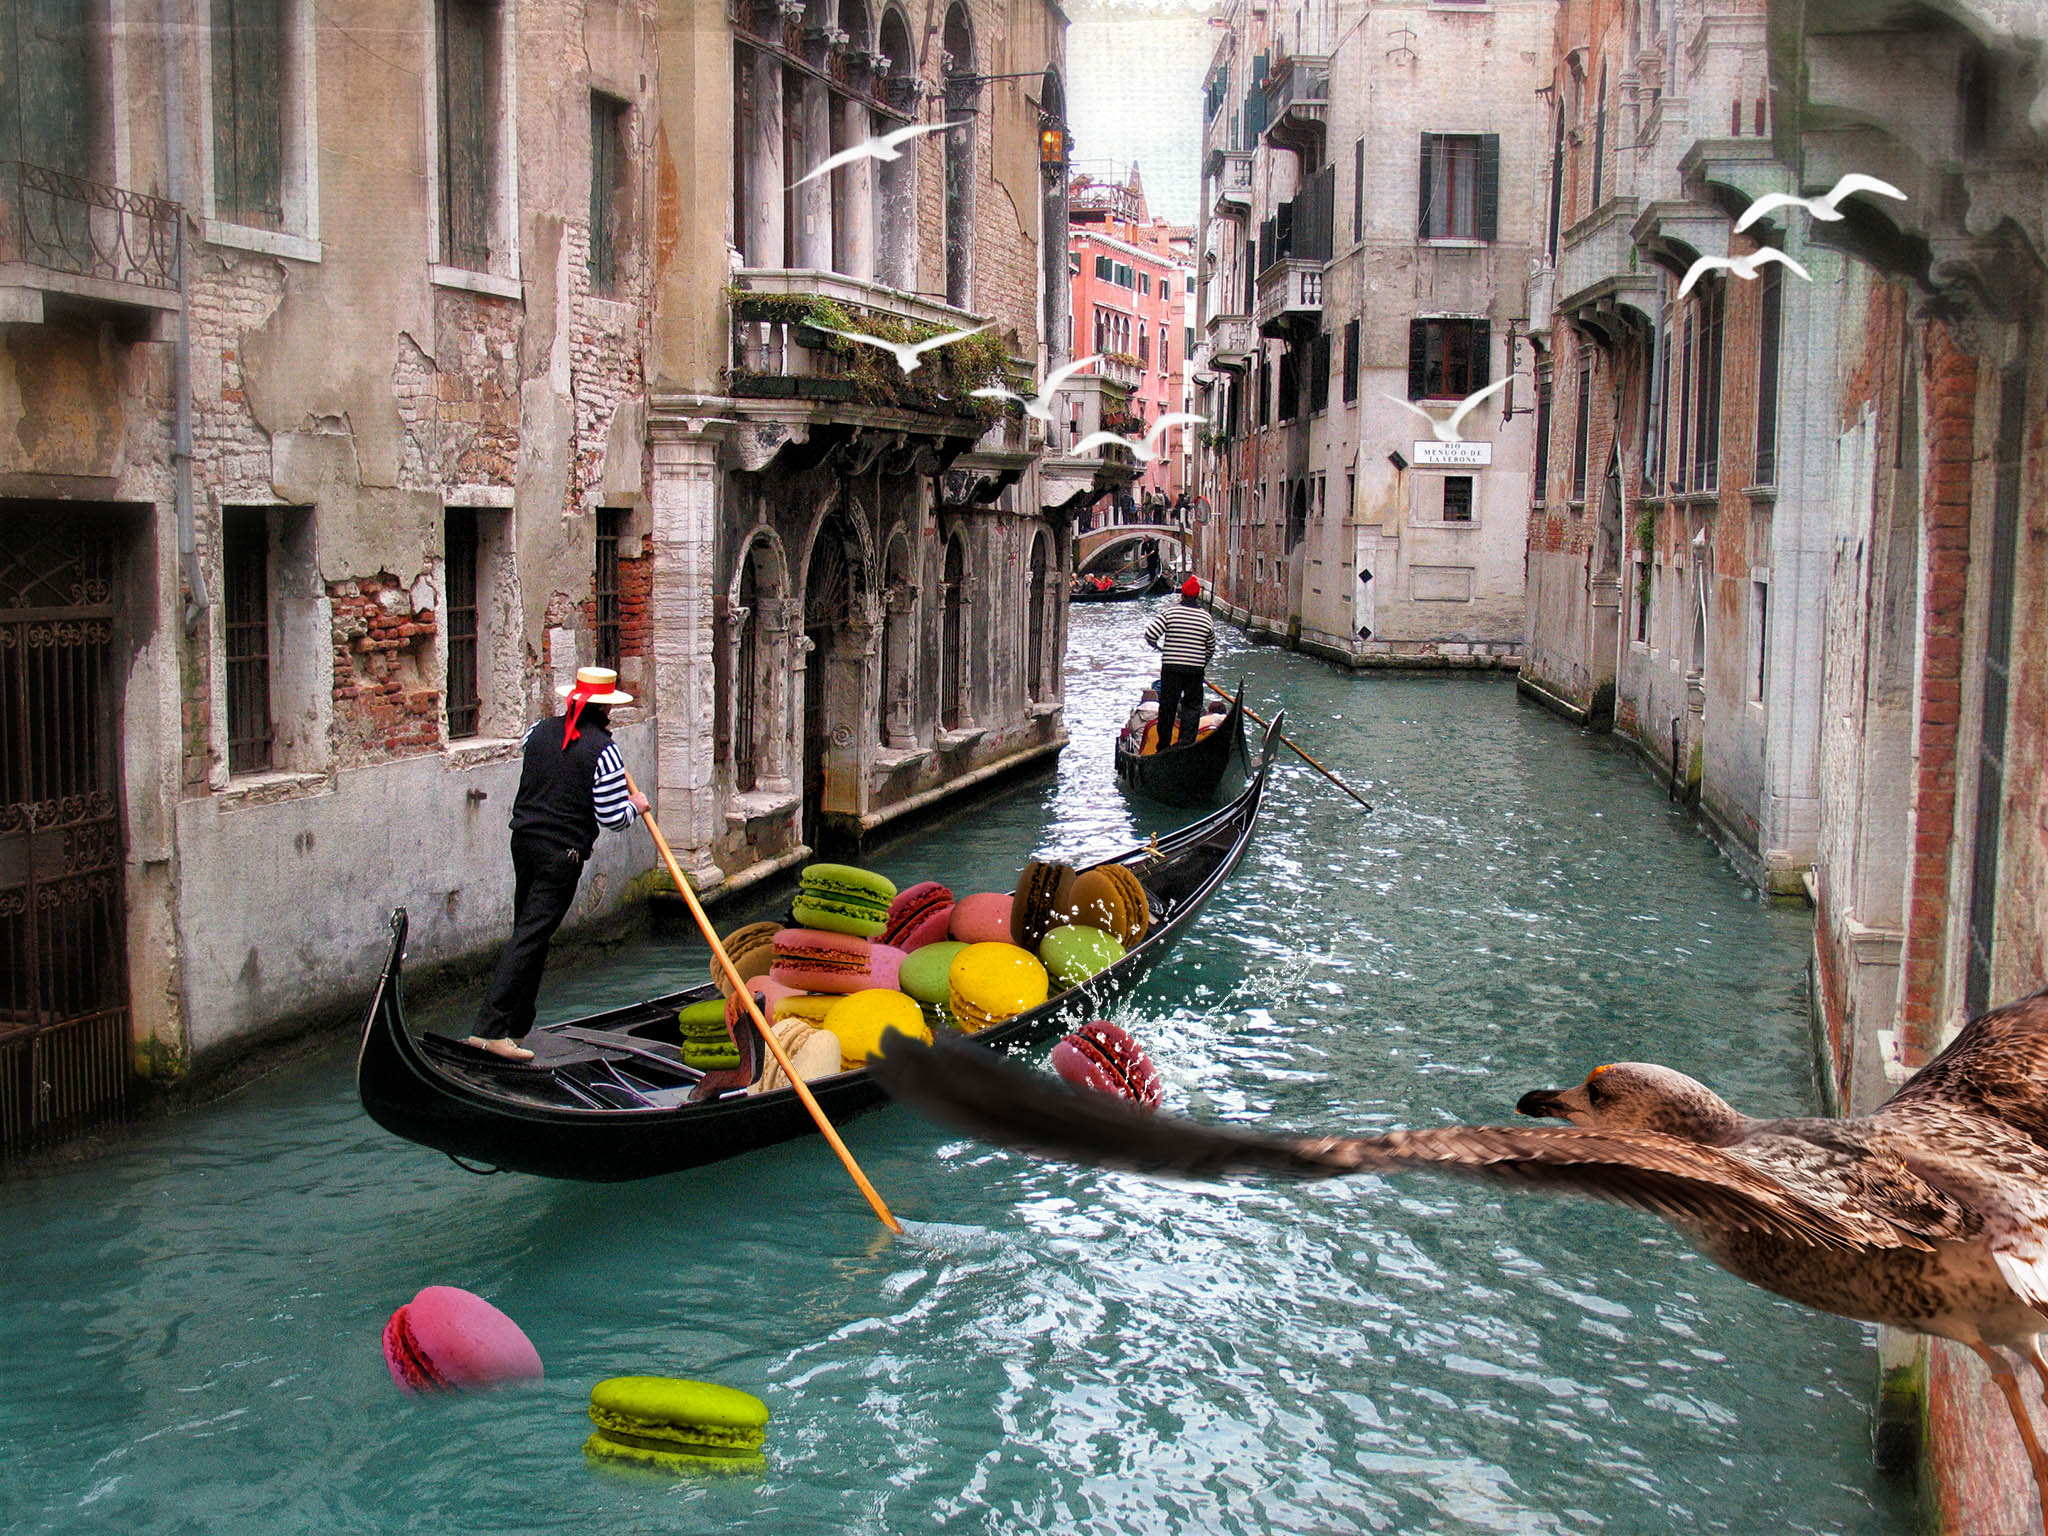 Melinda Isachsen JANIS Photography & Fine Art Transporting Macarons in Venice Italy